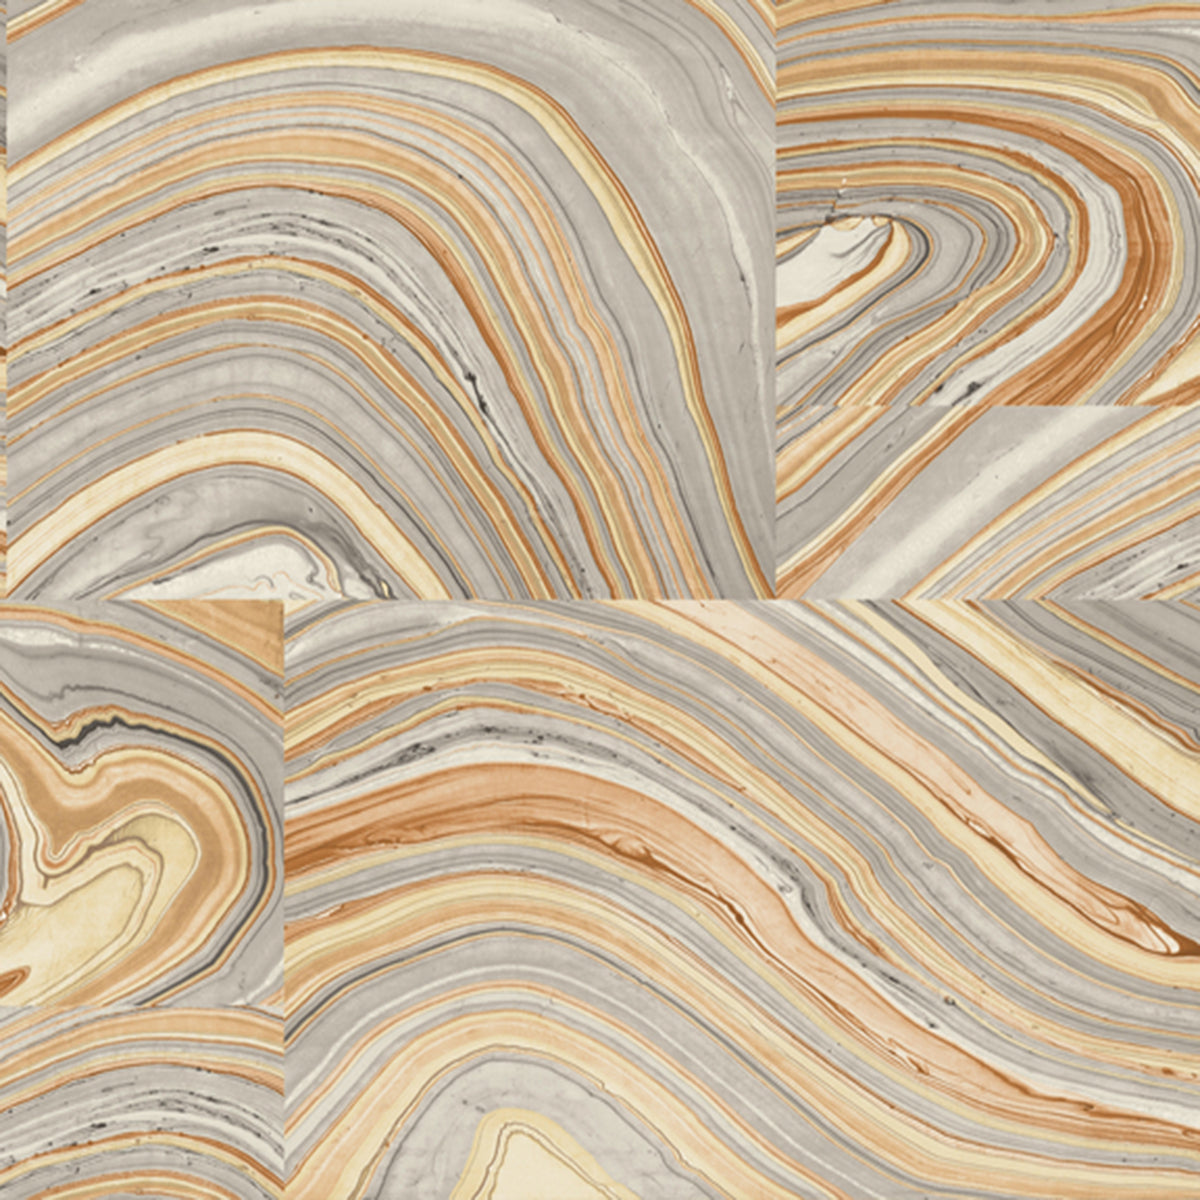 Dream On Onyx Wallpaper in Orange/rust